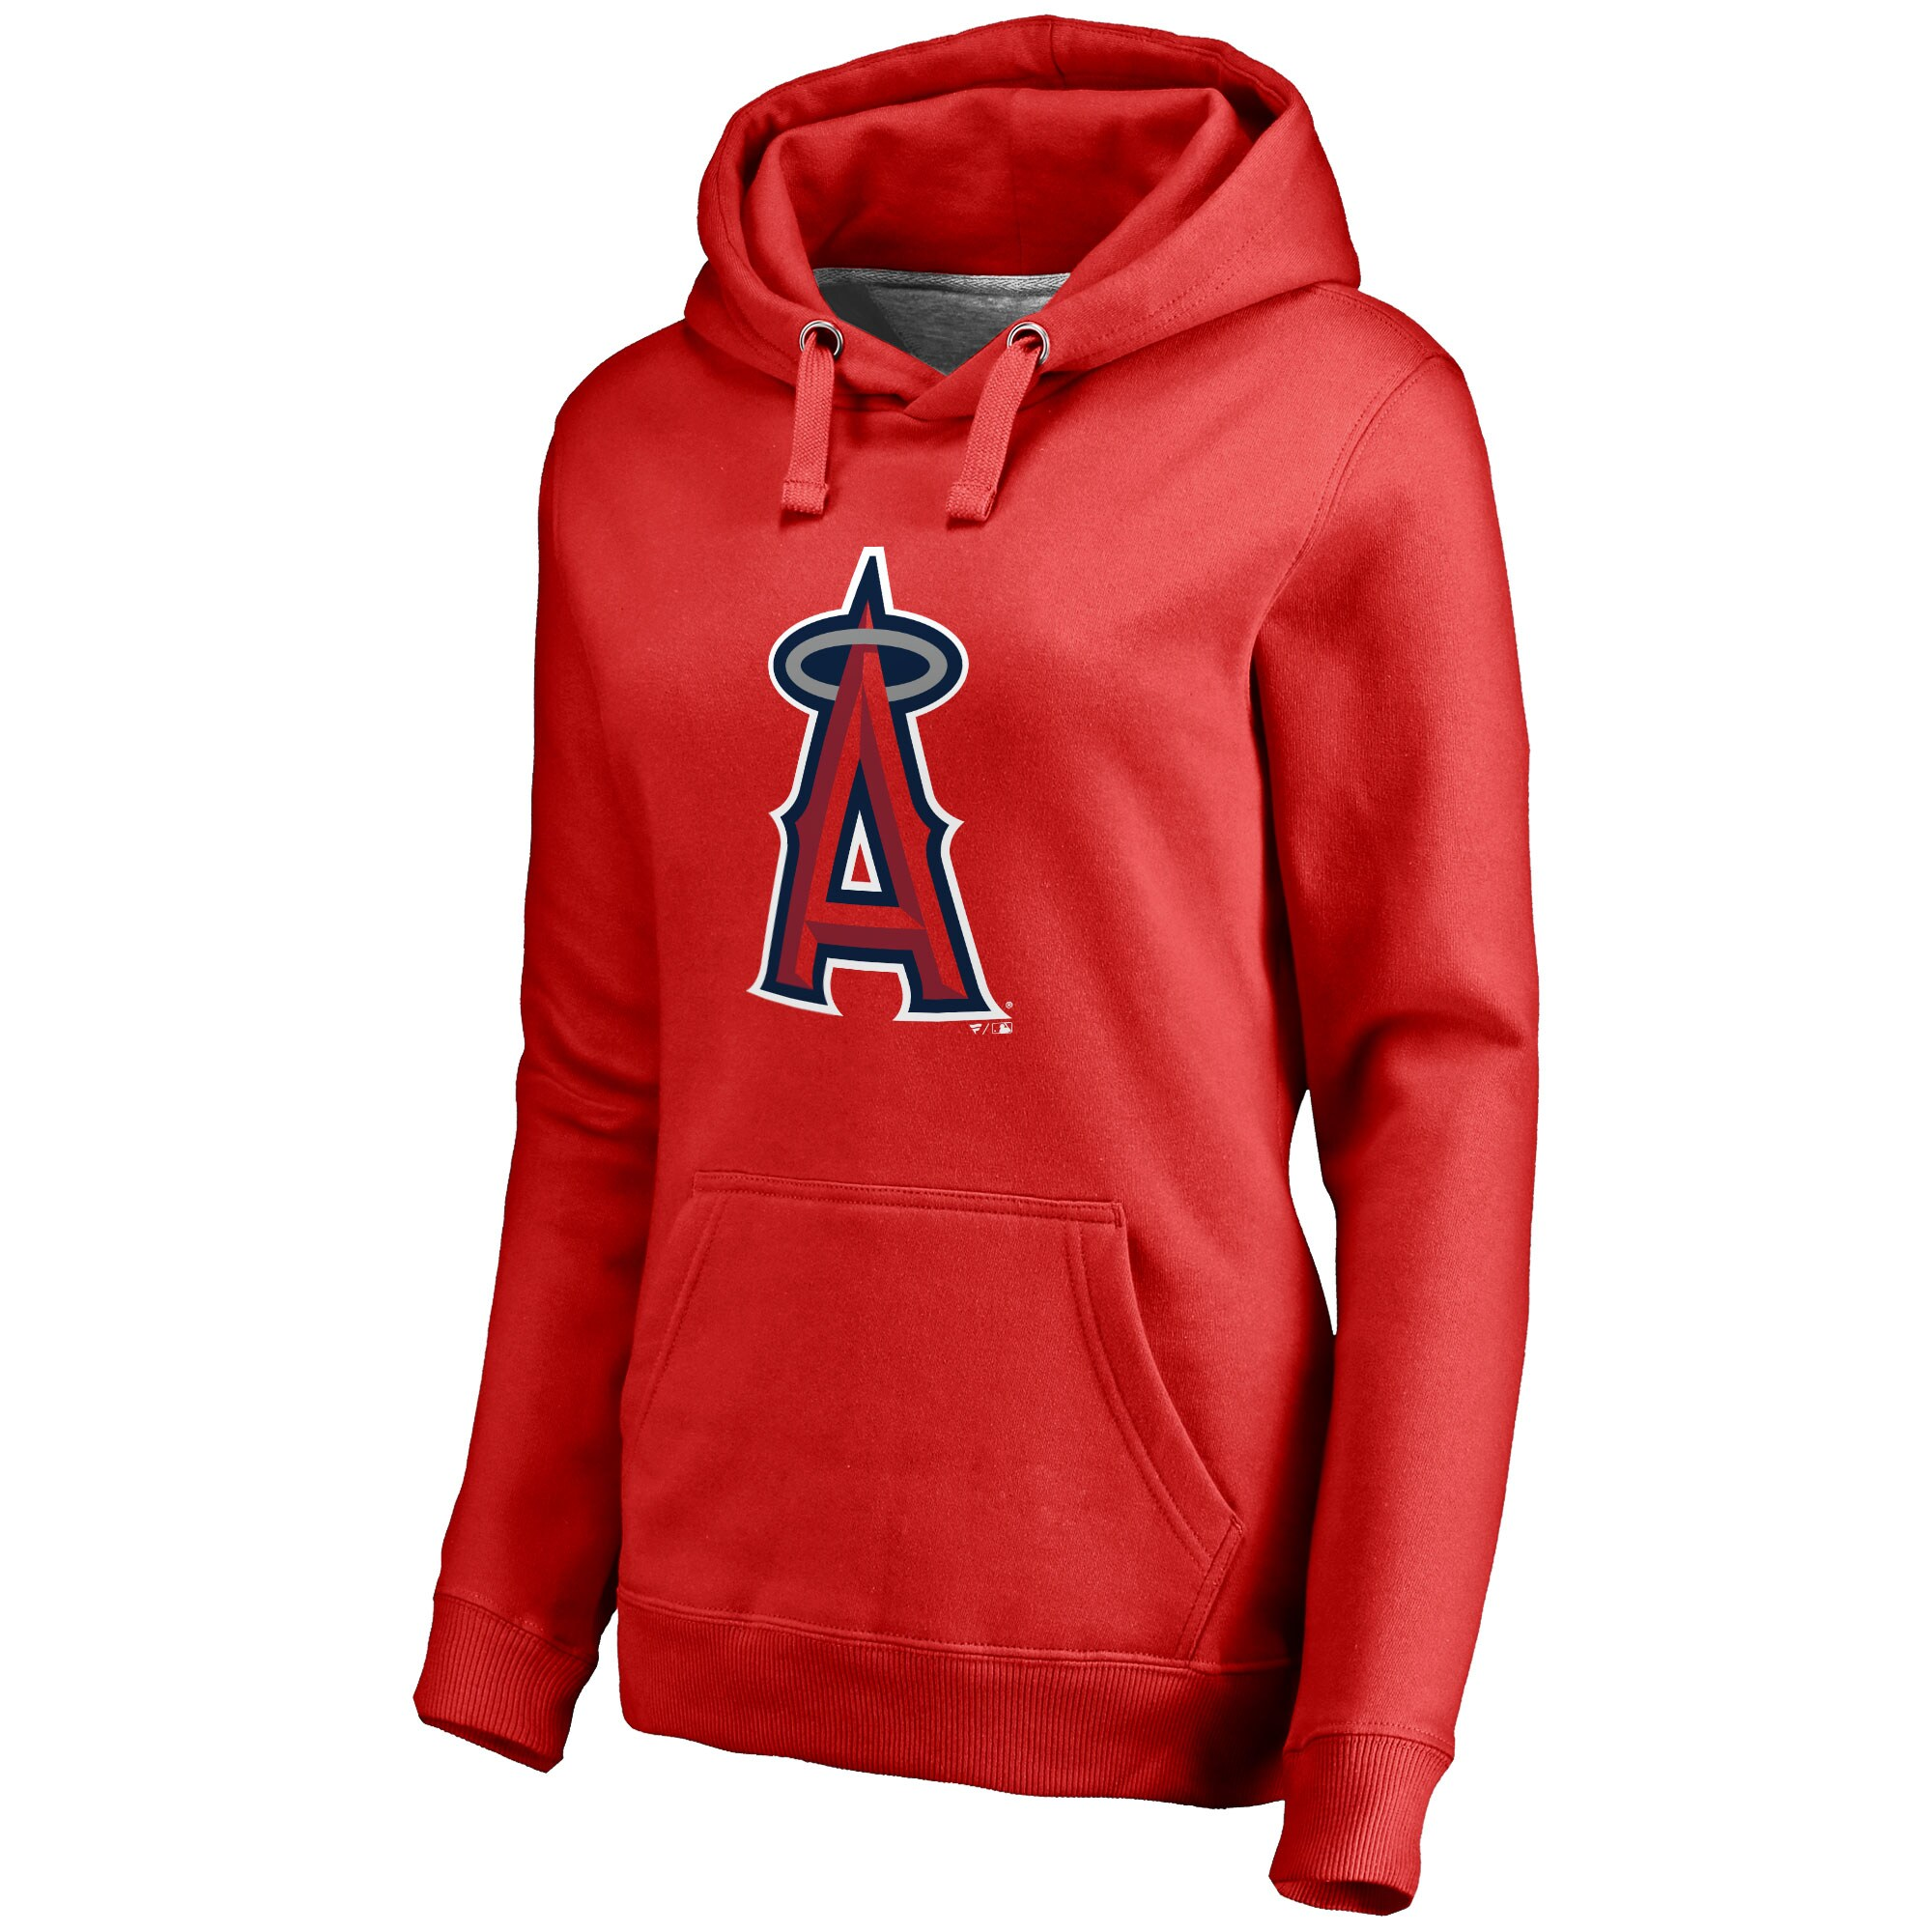 Los Angeles Angels Women's Team Color Primary Logo Pullover Hoodie - Red